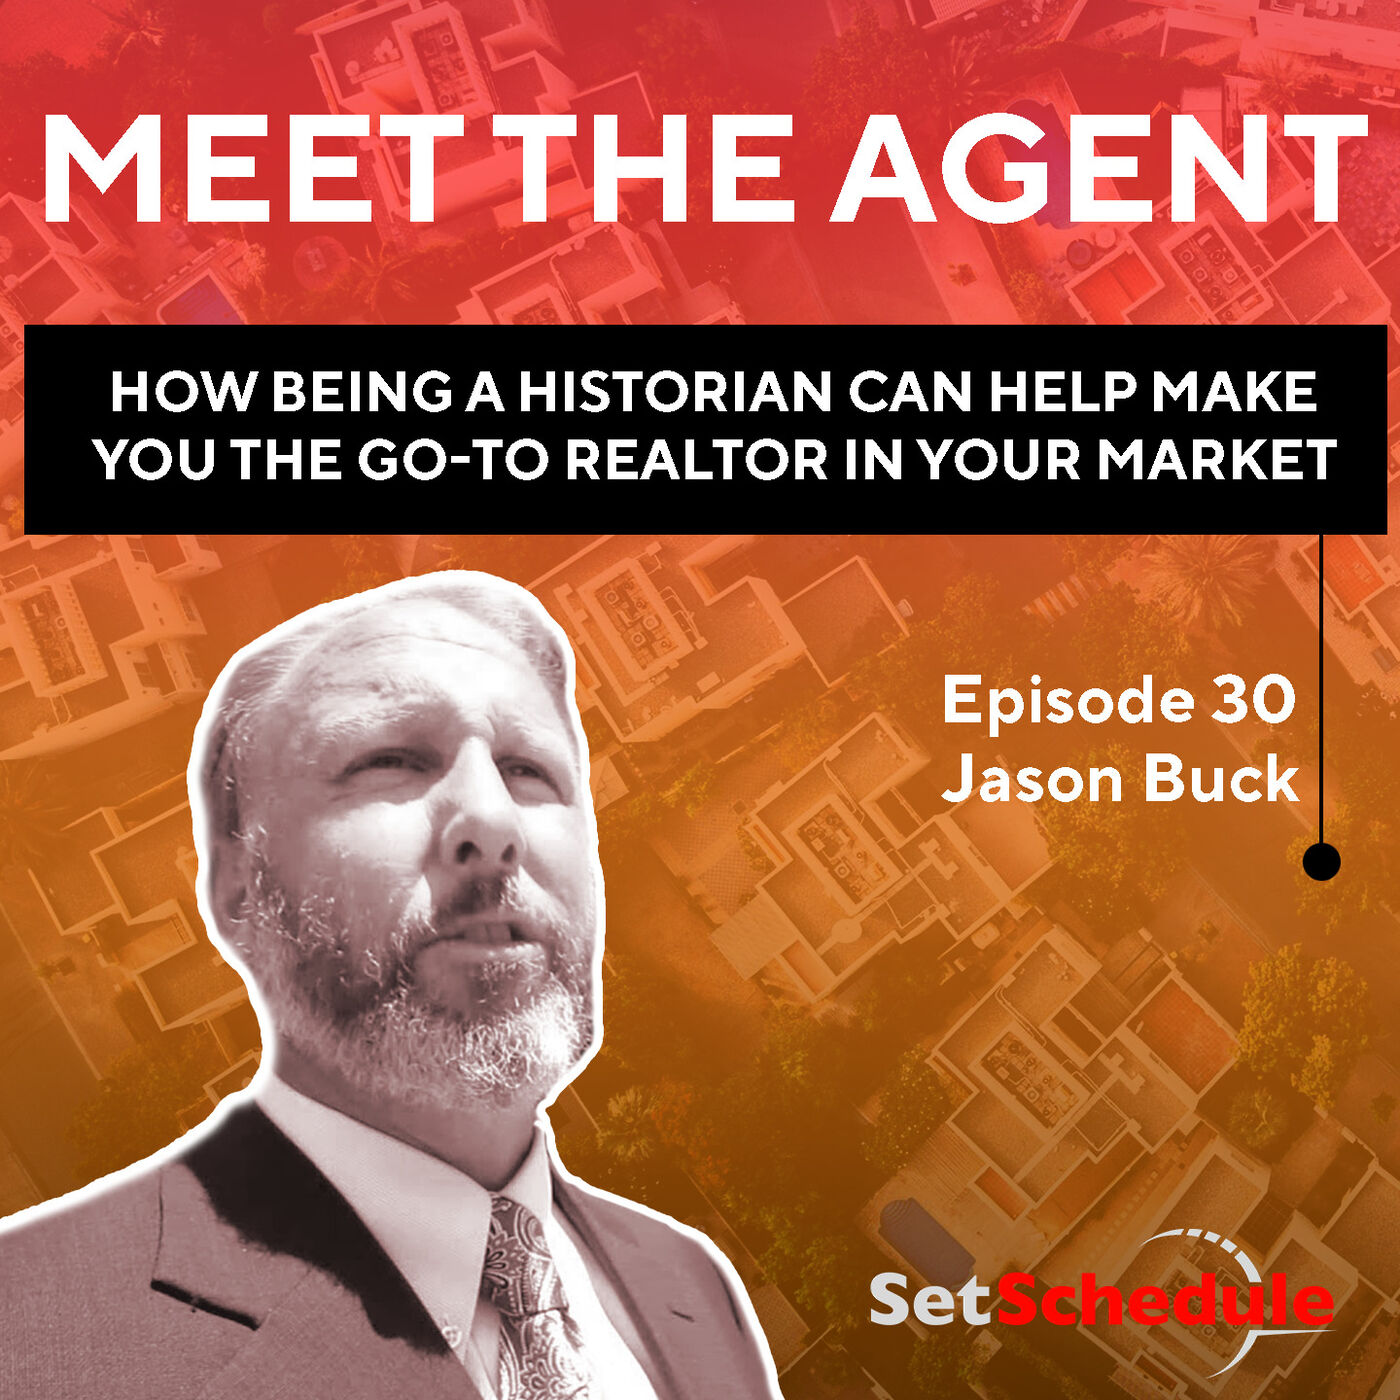 How Being A Historian Can Help Make You The Go-To Realtor In Your Market - Jason Buck